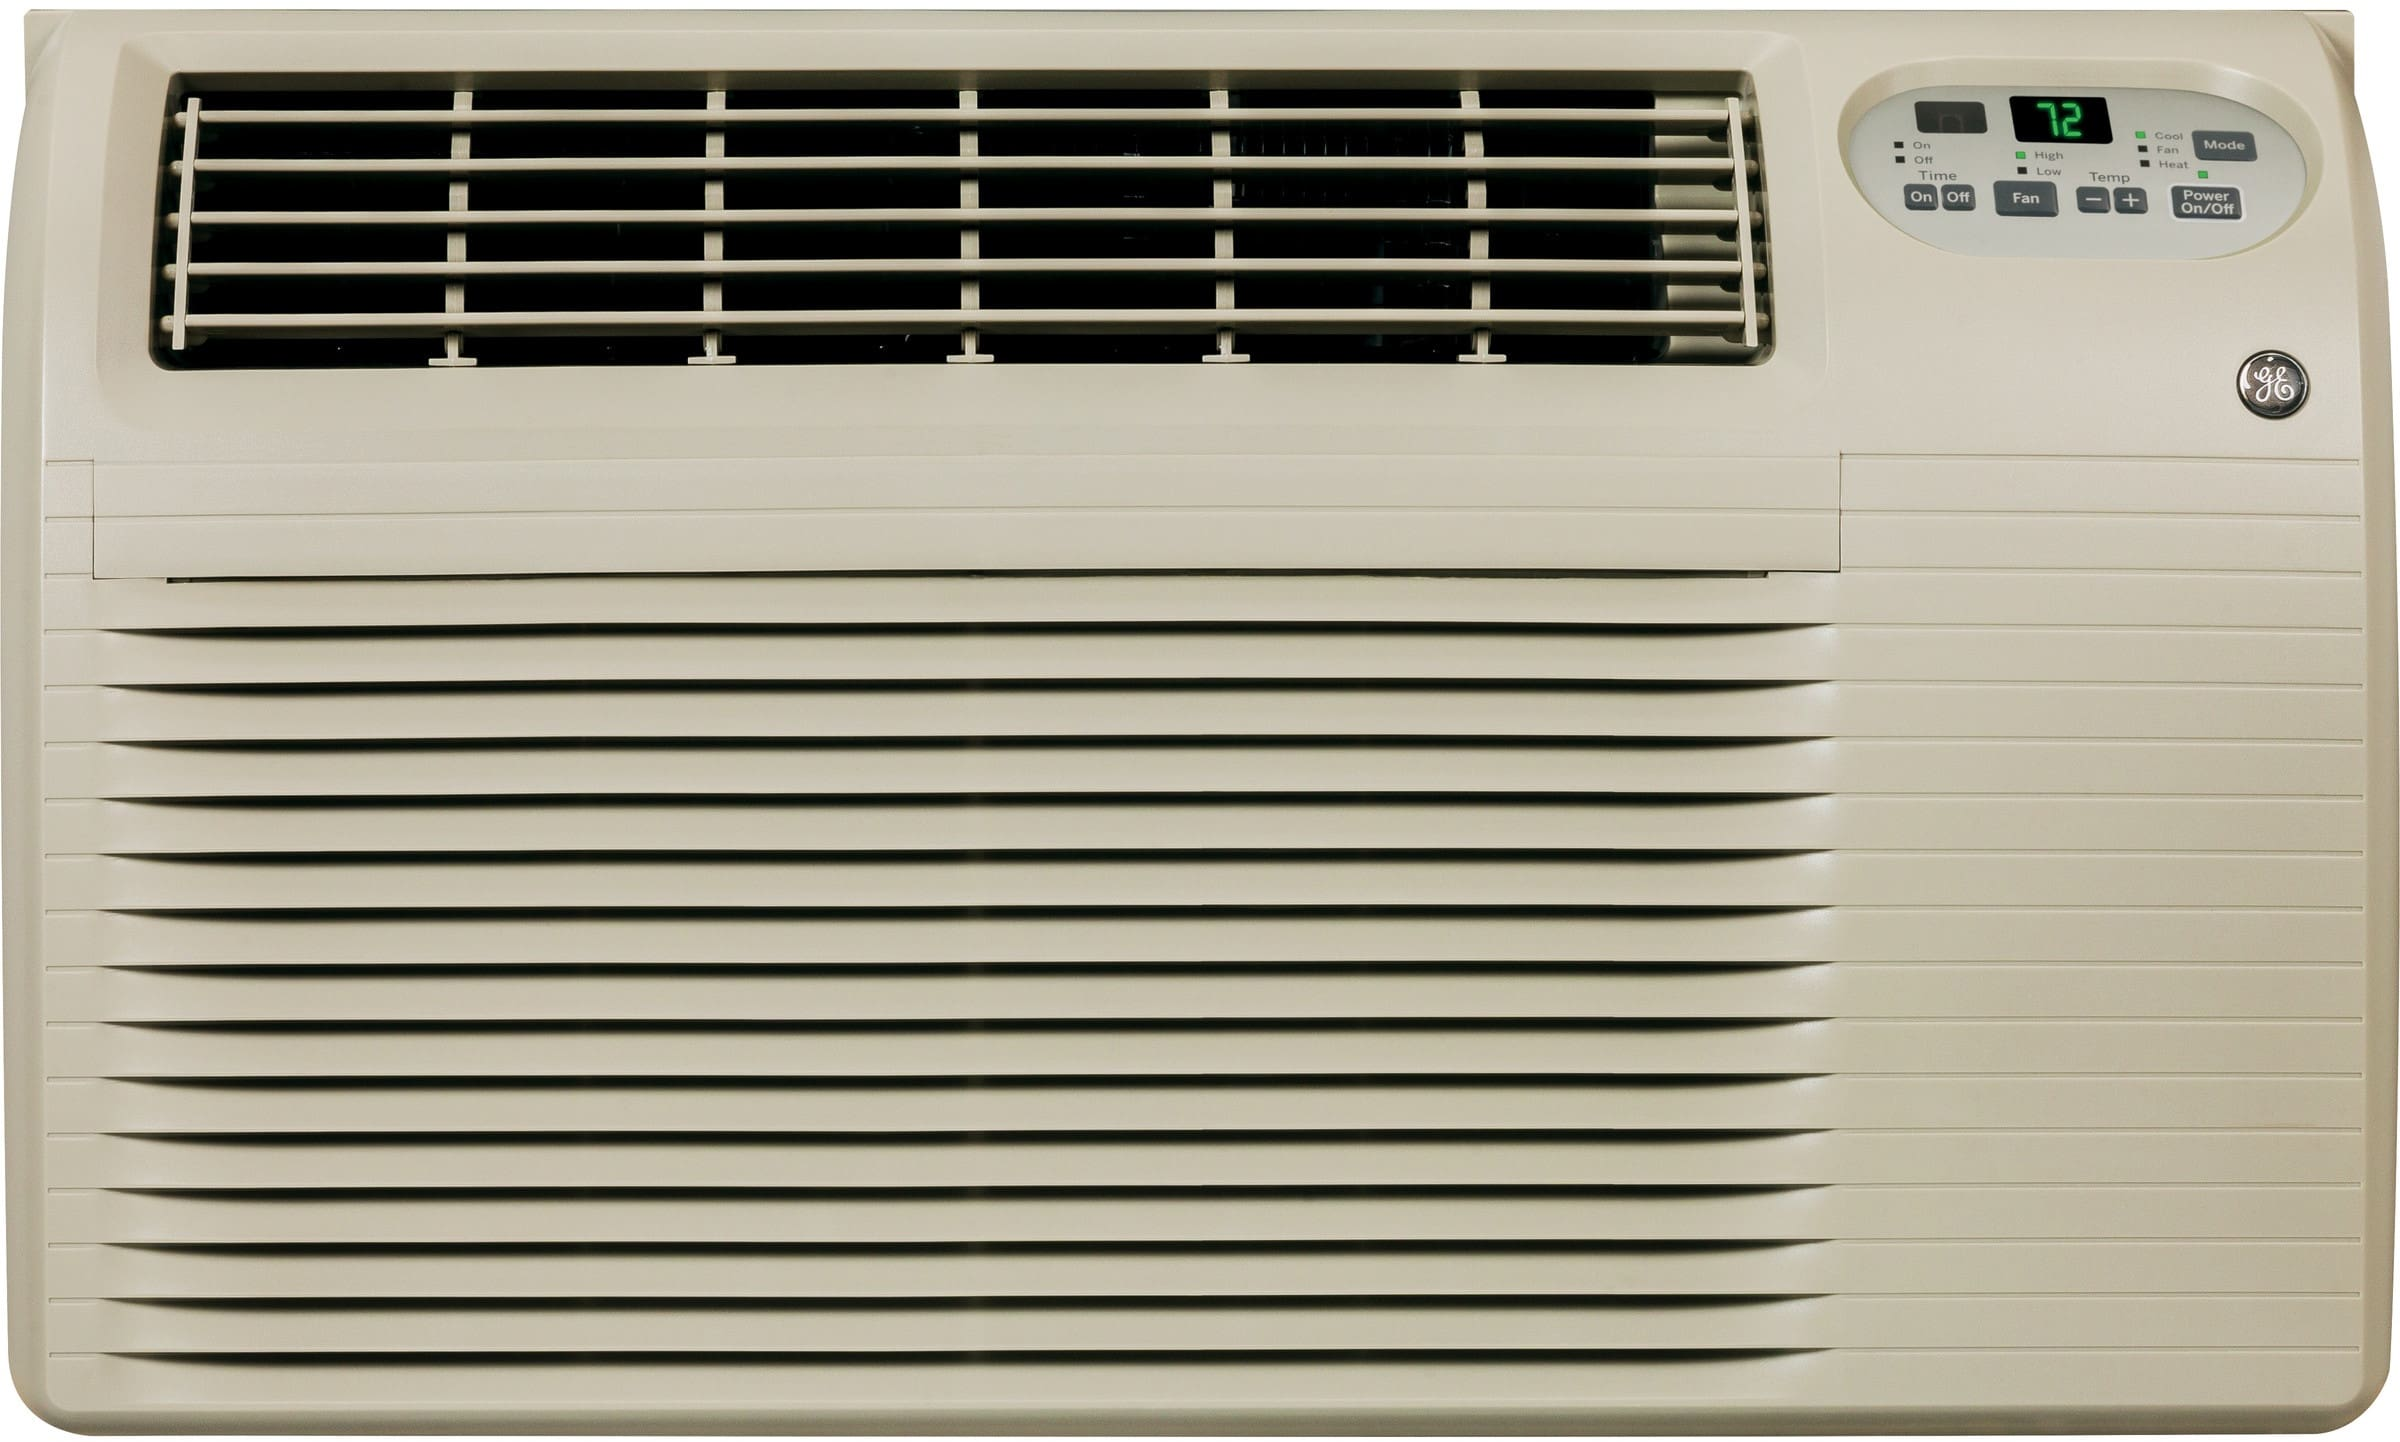 Find Every Shop In The World Selling Pioneer Ductless Mini Split Air Klimaire Wiring Diagram R410a Ajeq12dcf 241316 192932 620p 230208 084691261339 275235